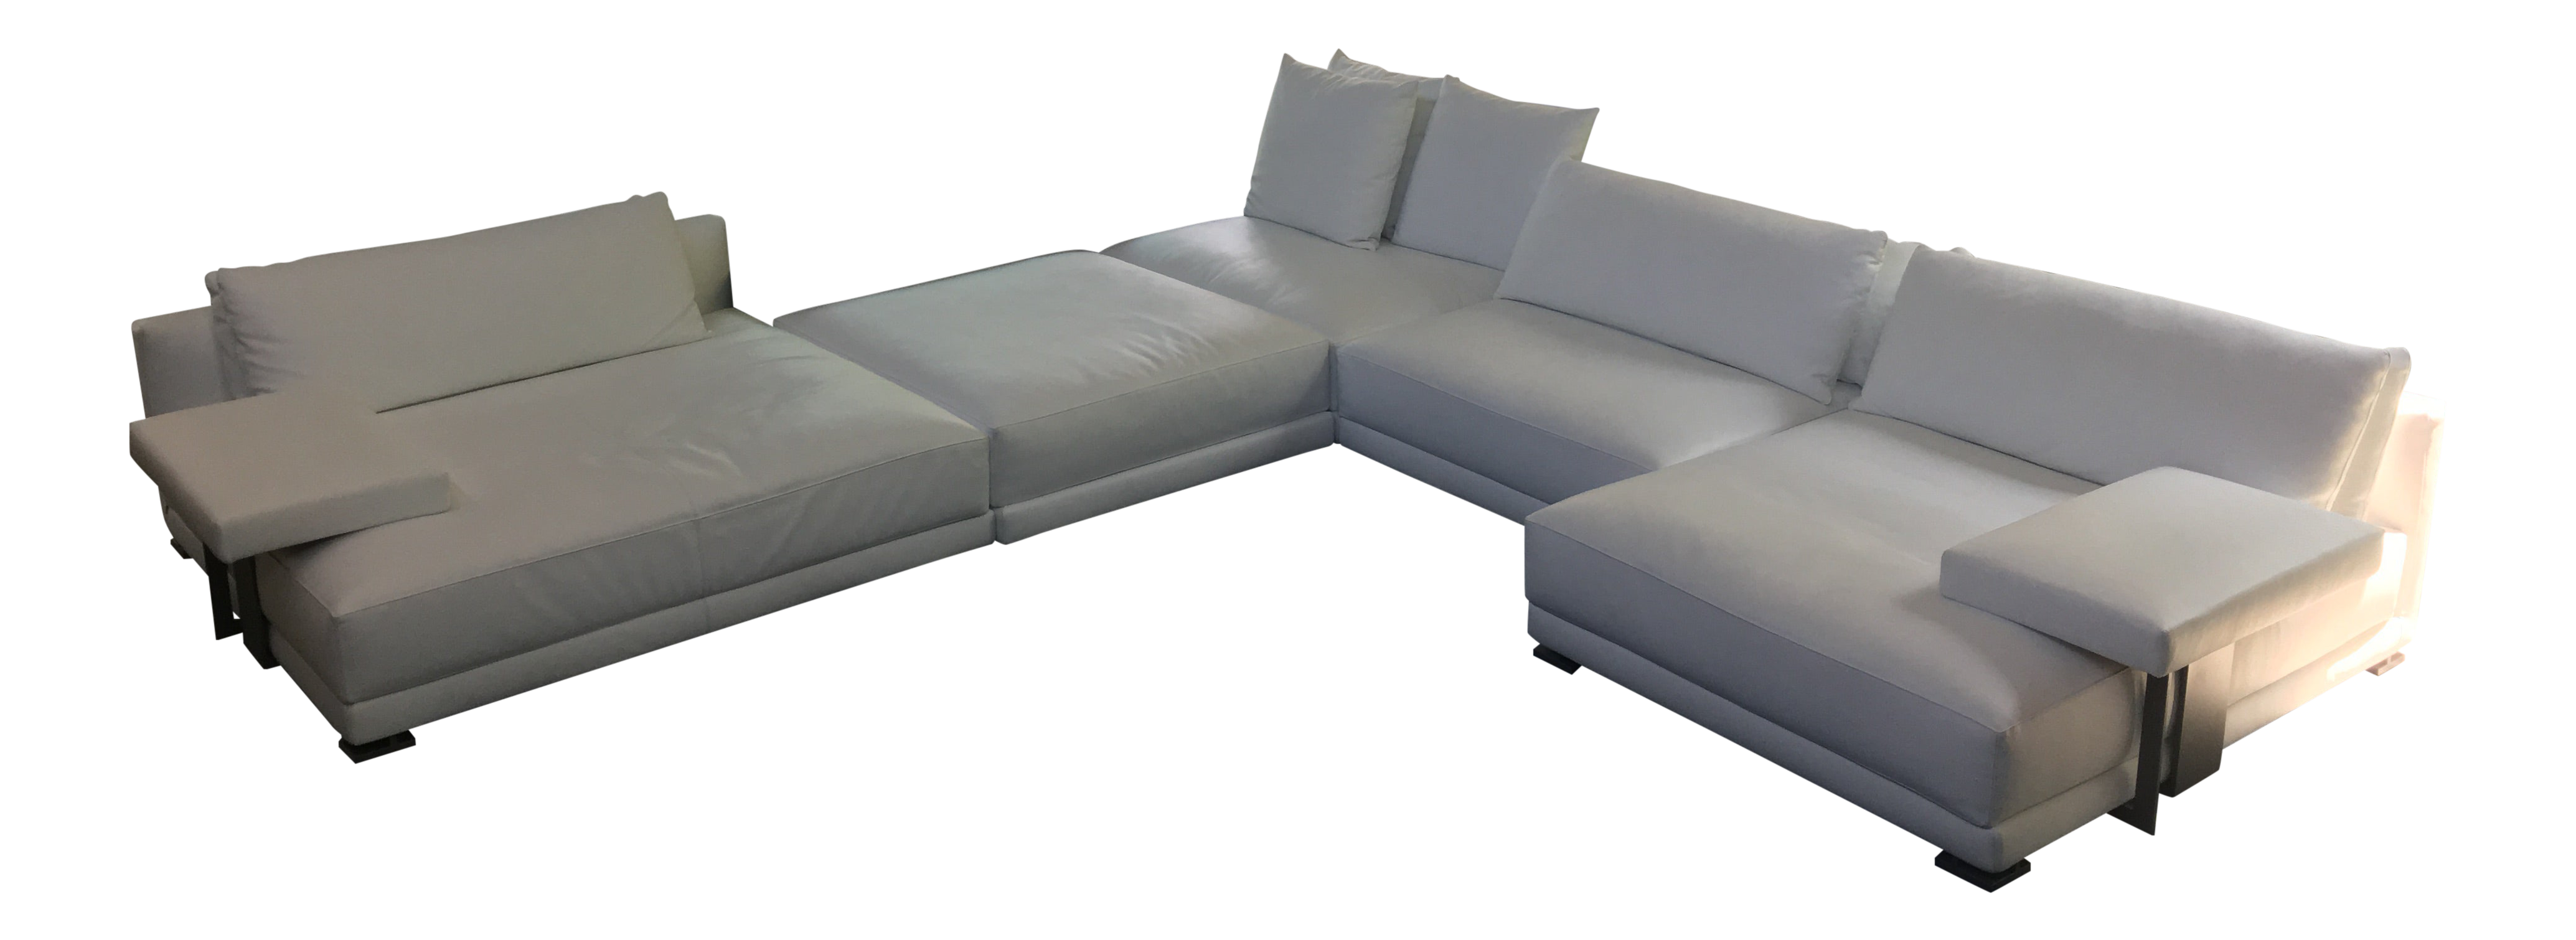 Magnificent Poliform Bristol Leather Couch With Table Short Links Chair Design For Home Short Linksinfo